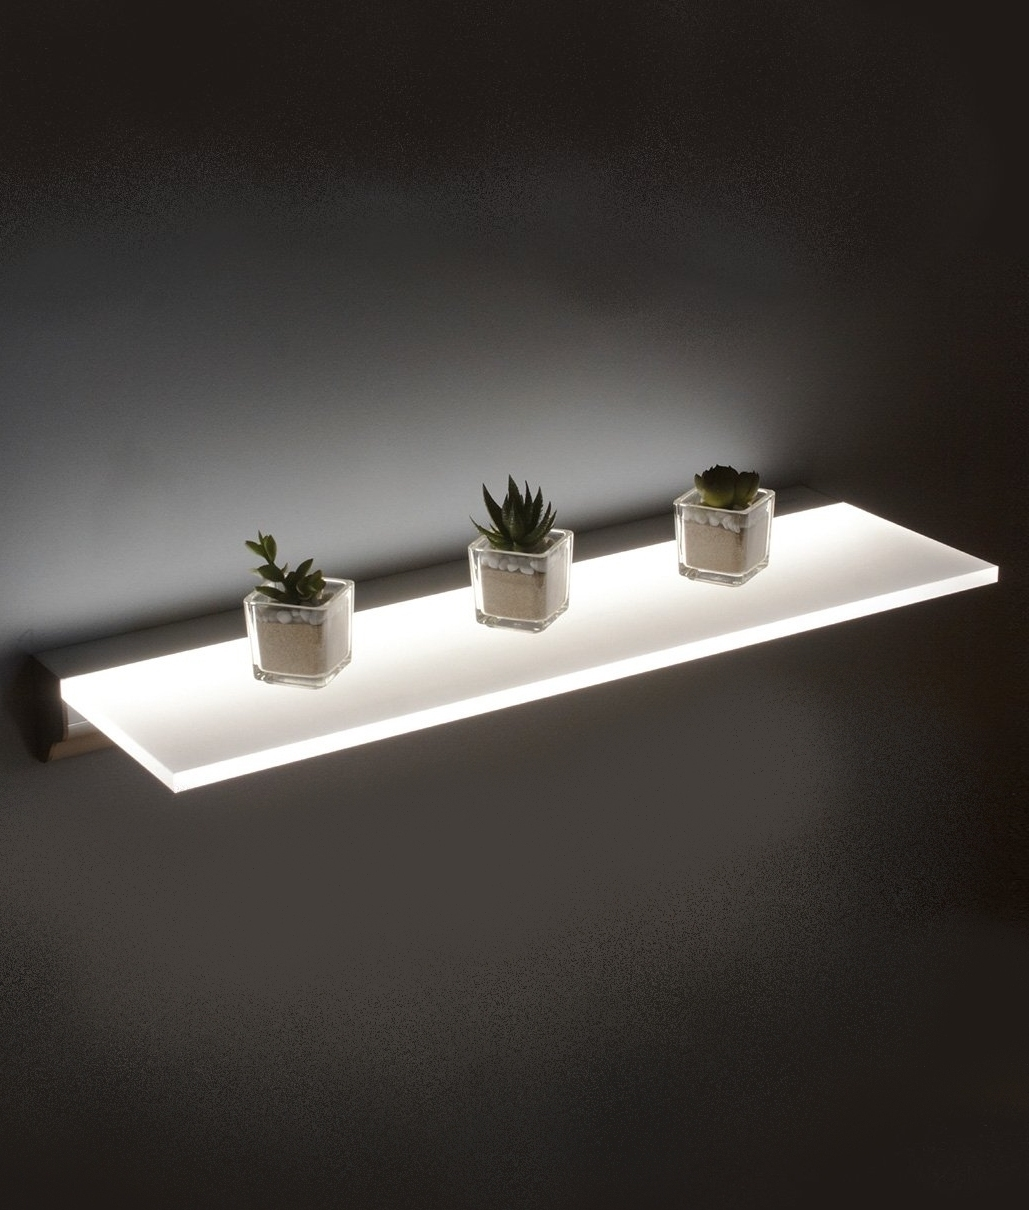 Led Opal Illuminated Shelf Two Sizes Regarding Illuminated Glass Shelf (View 2 of 15)